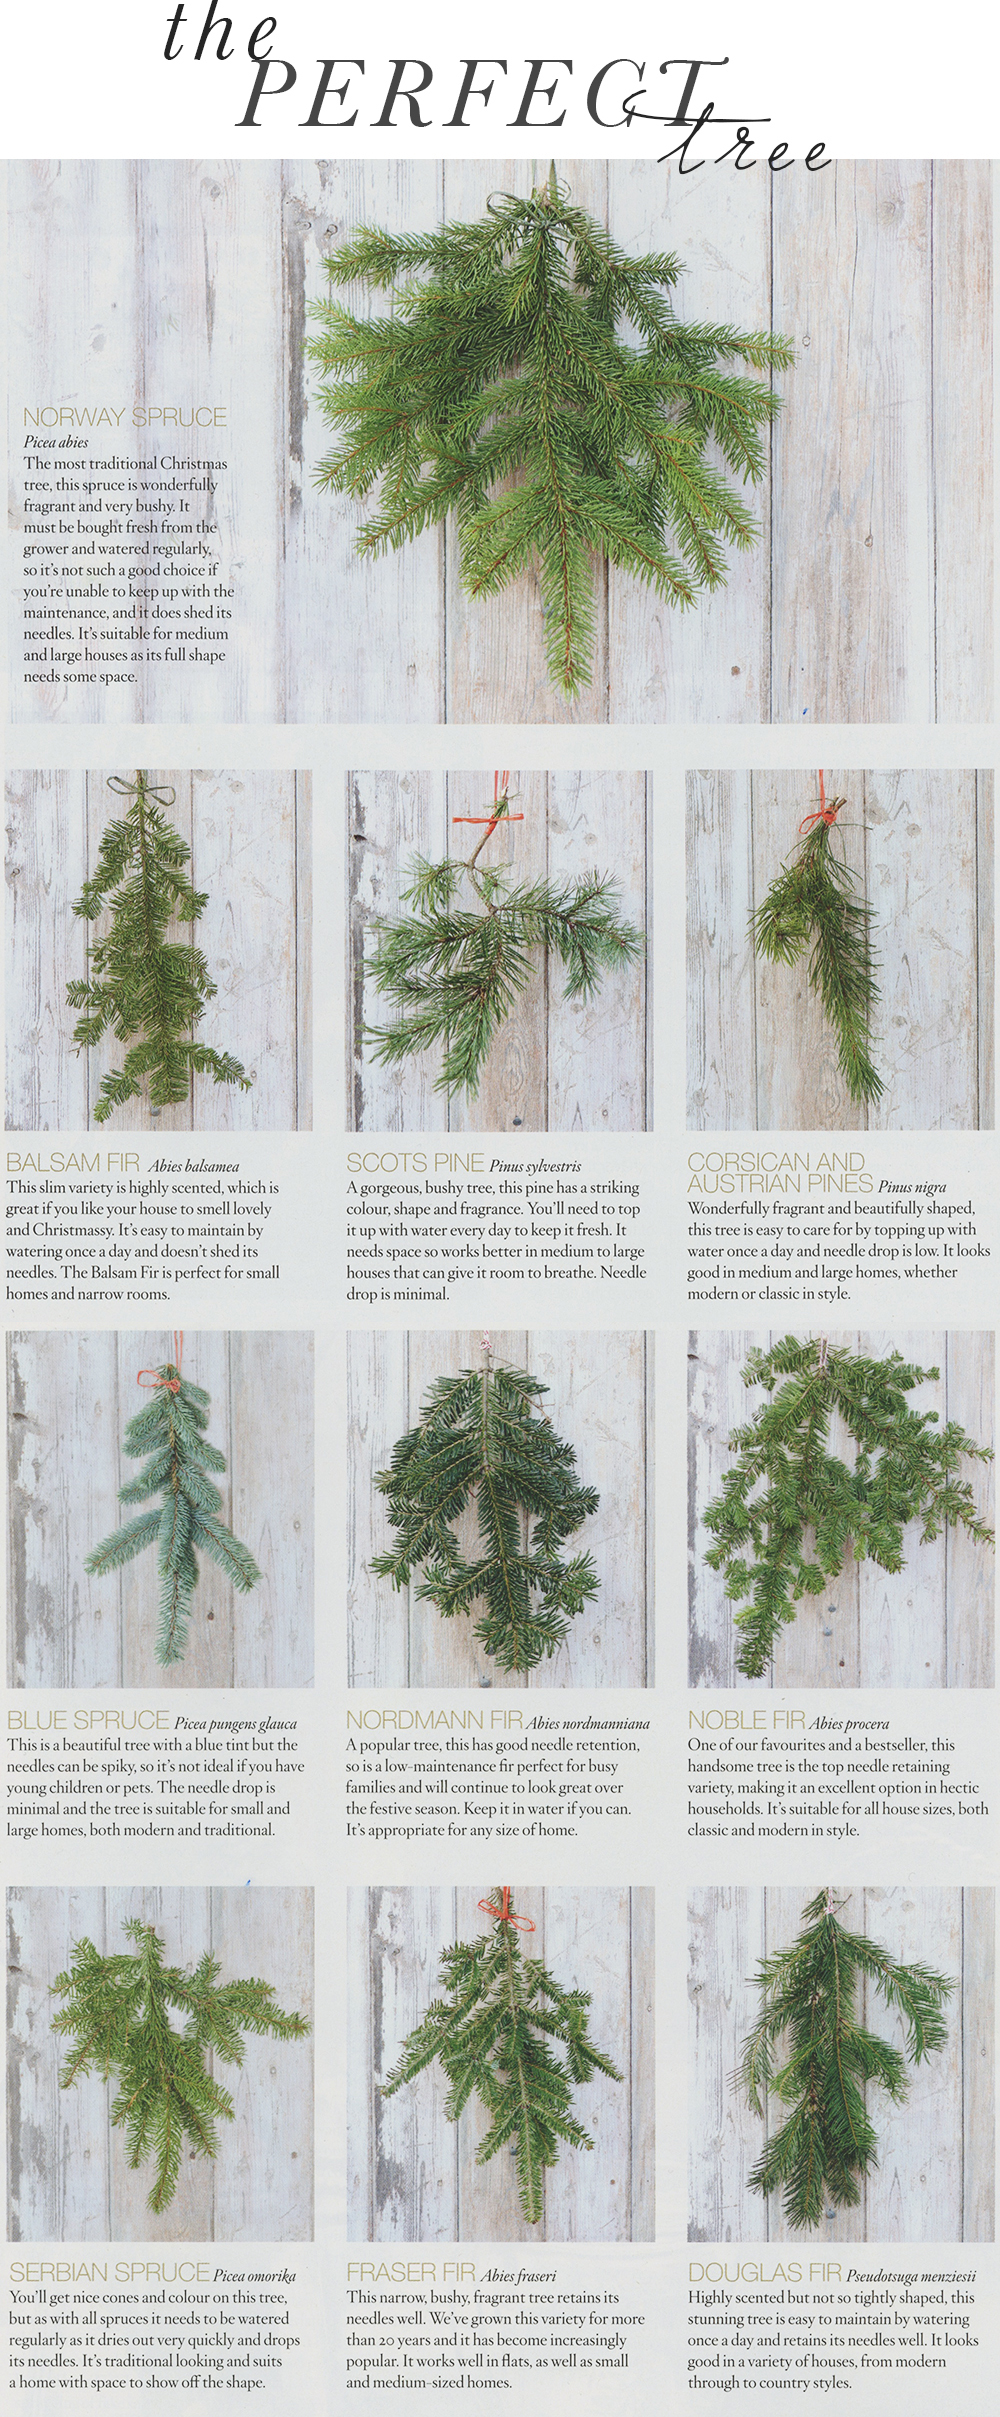 Different types of christmas trees pictures - Theperfecttree Jpg